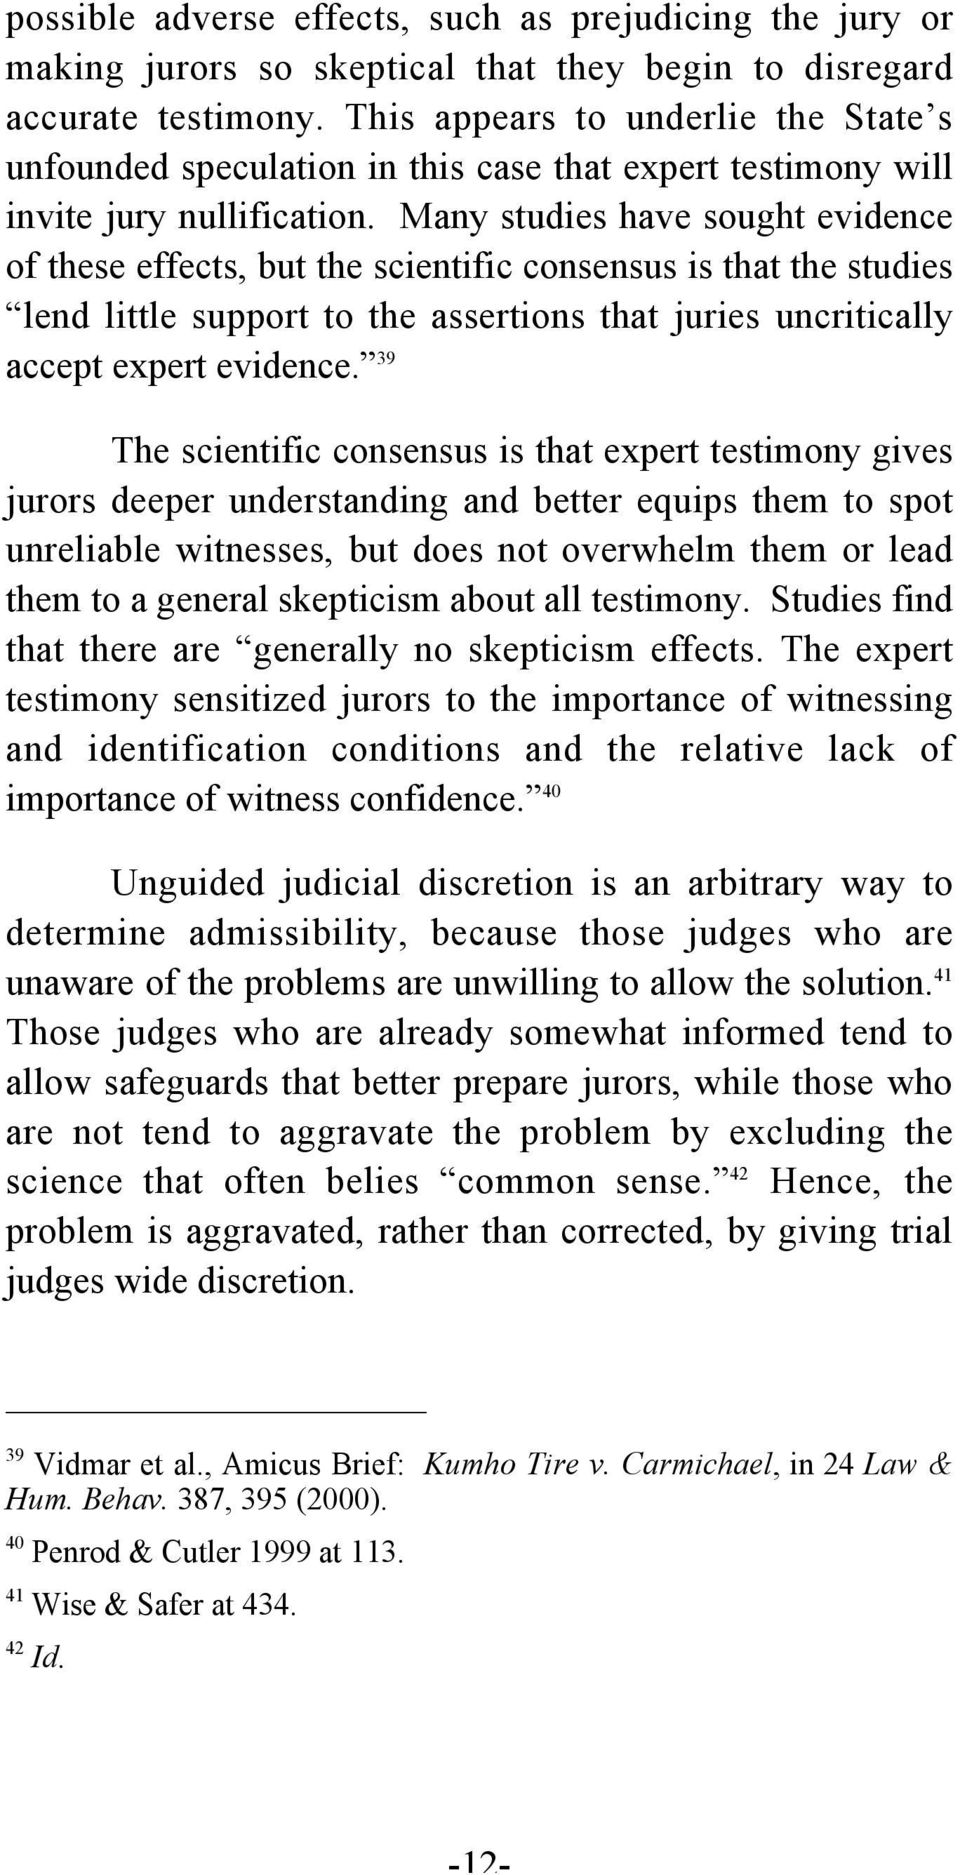 Many studies have sought evidence of these effects, but the scientific consensus is that the studies lend little support to the assertions that juries uncritically accept expert evidence.